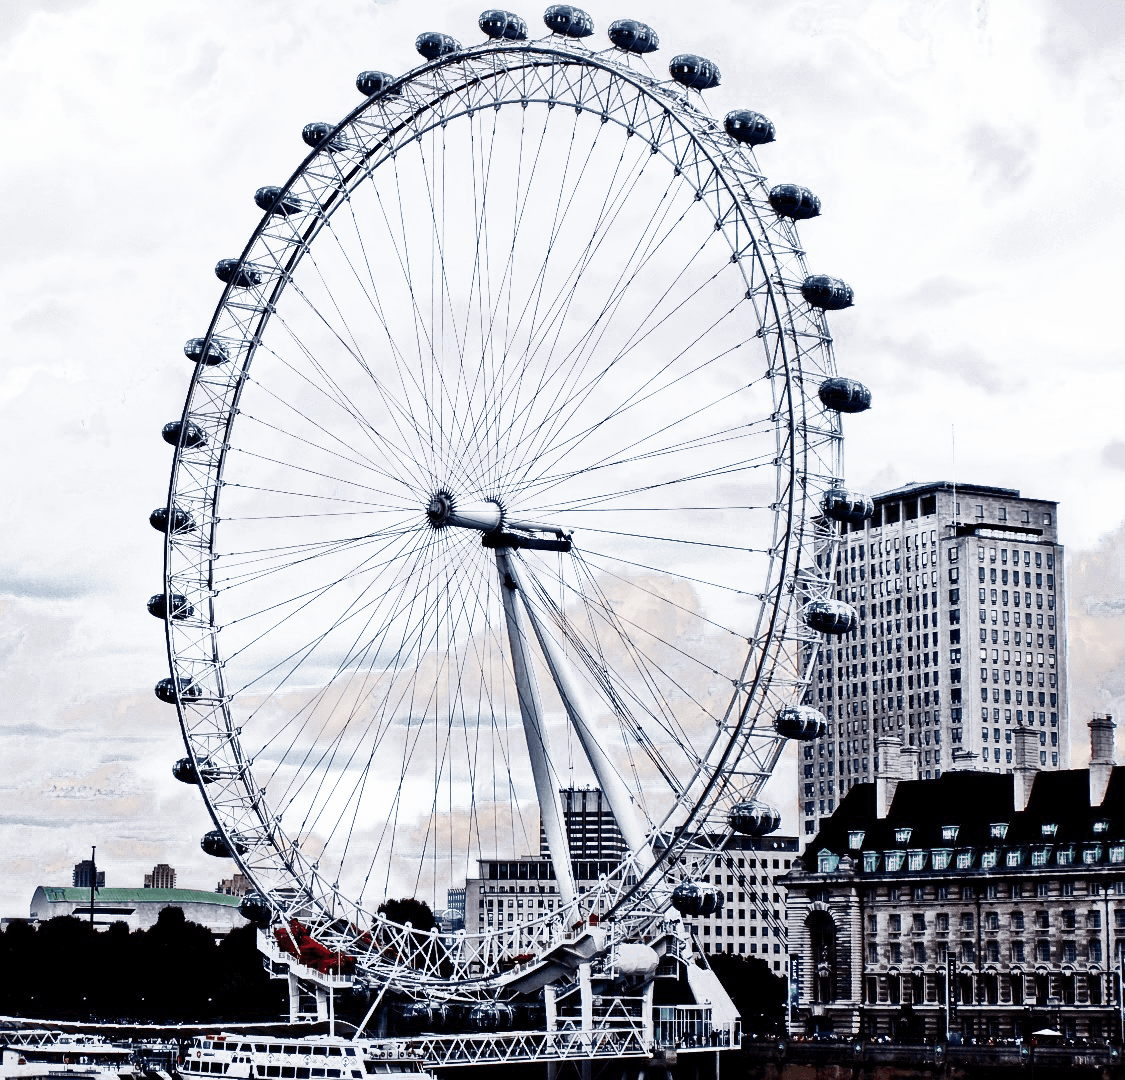 London Eye File PNG Image